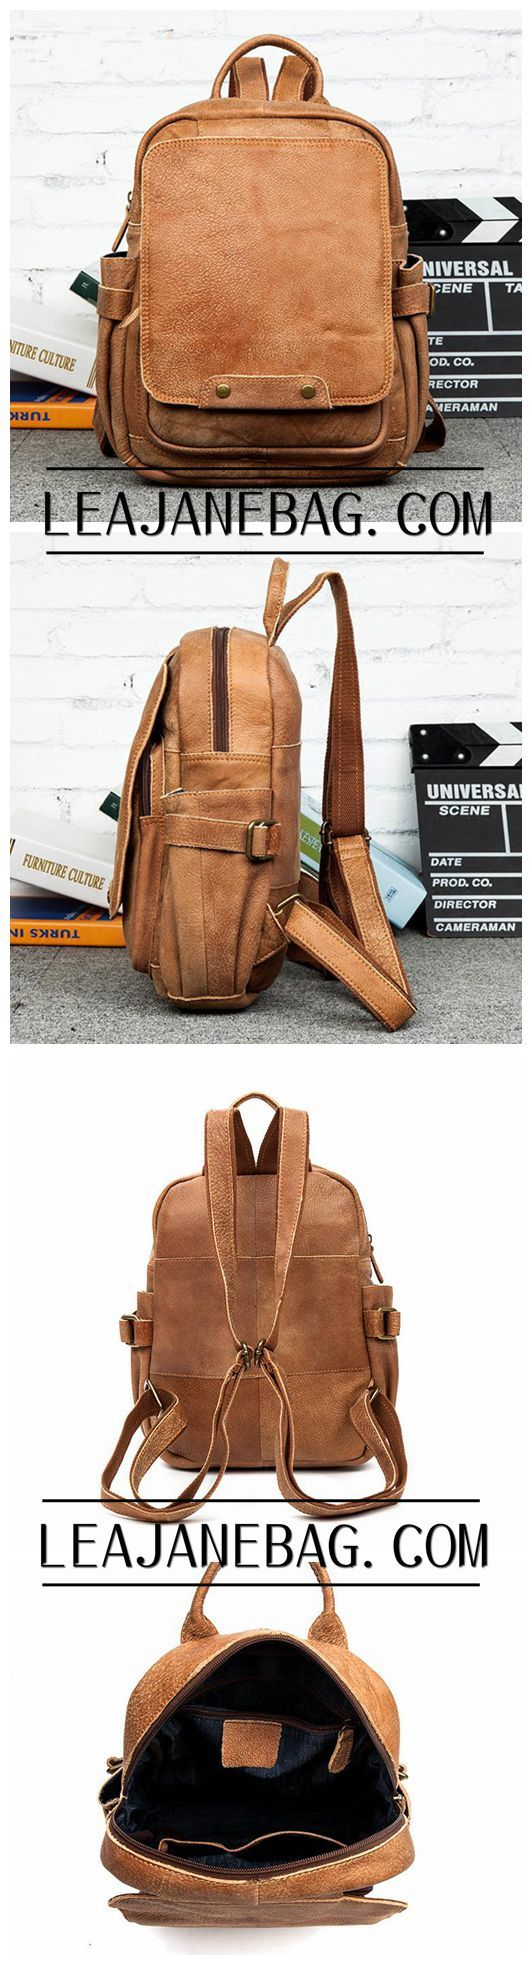 Leather Backpack Roll Top Backpack, Brown Leather Backpack, Laptop Backpack MS017